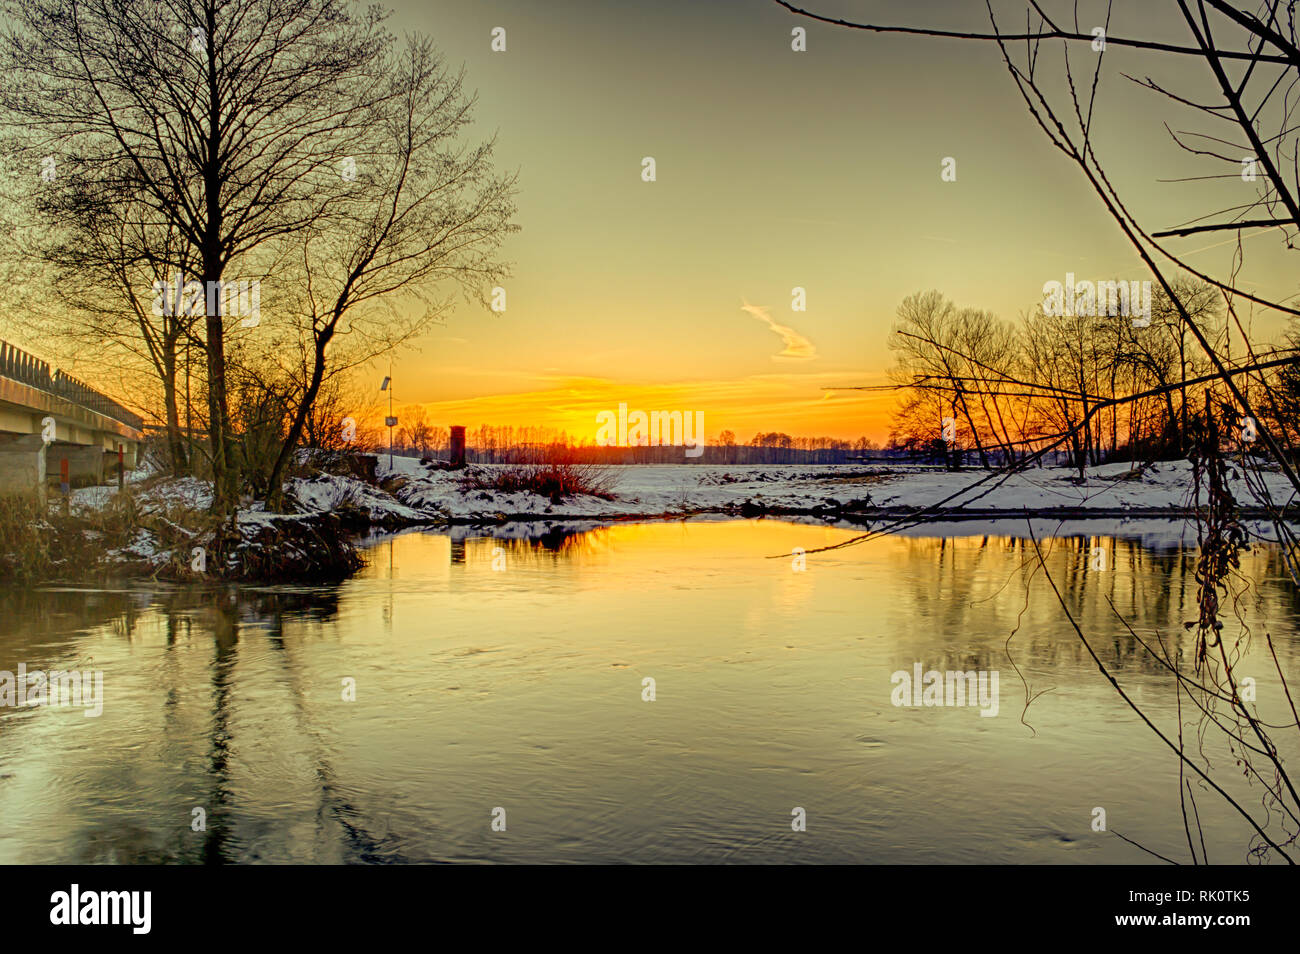 Winter sunset on the Widawka river in central Poland - Stock Image